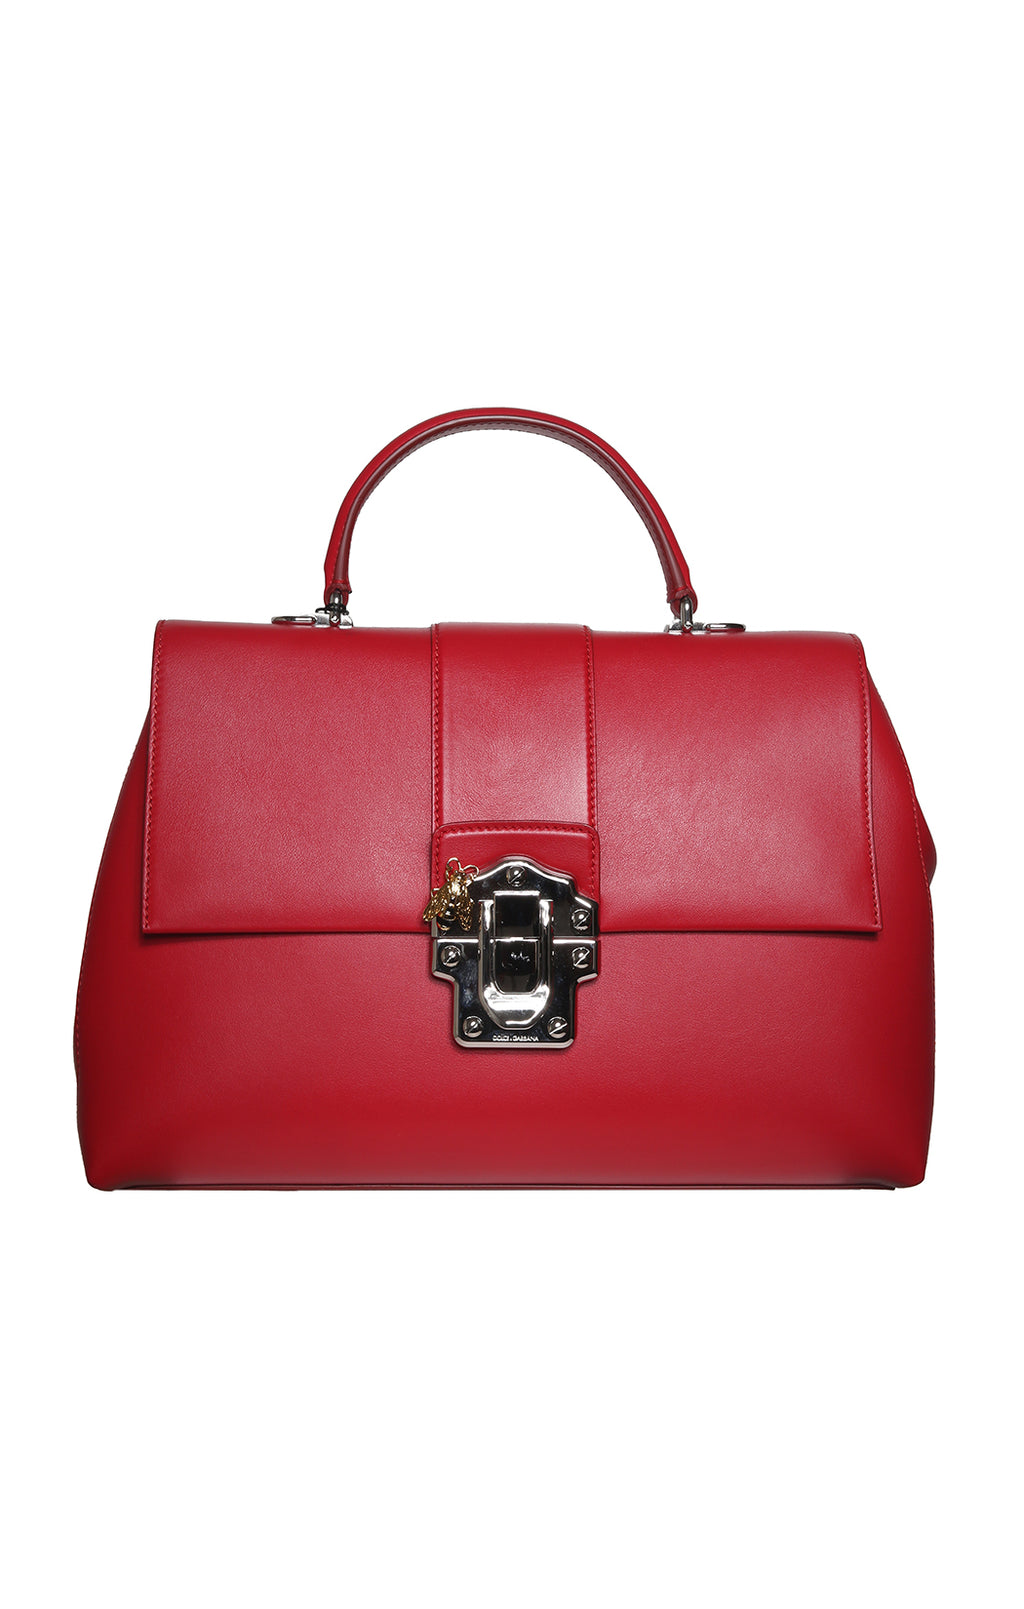 Front view of DOLCE & GABBANA Red Purse with Tags Size: 15 x 11 x 5.5 in.